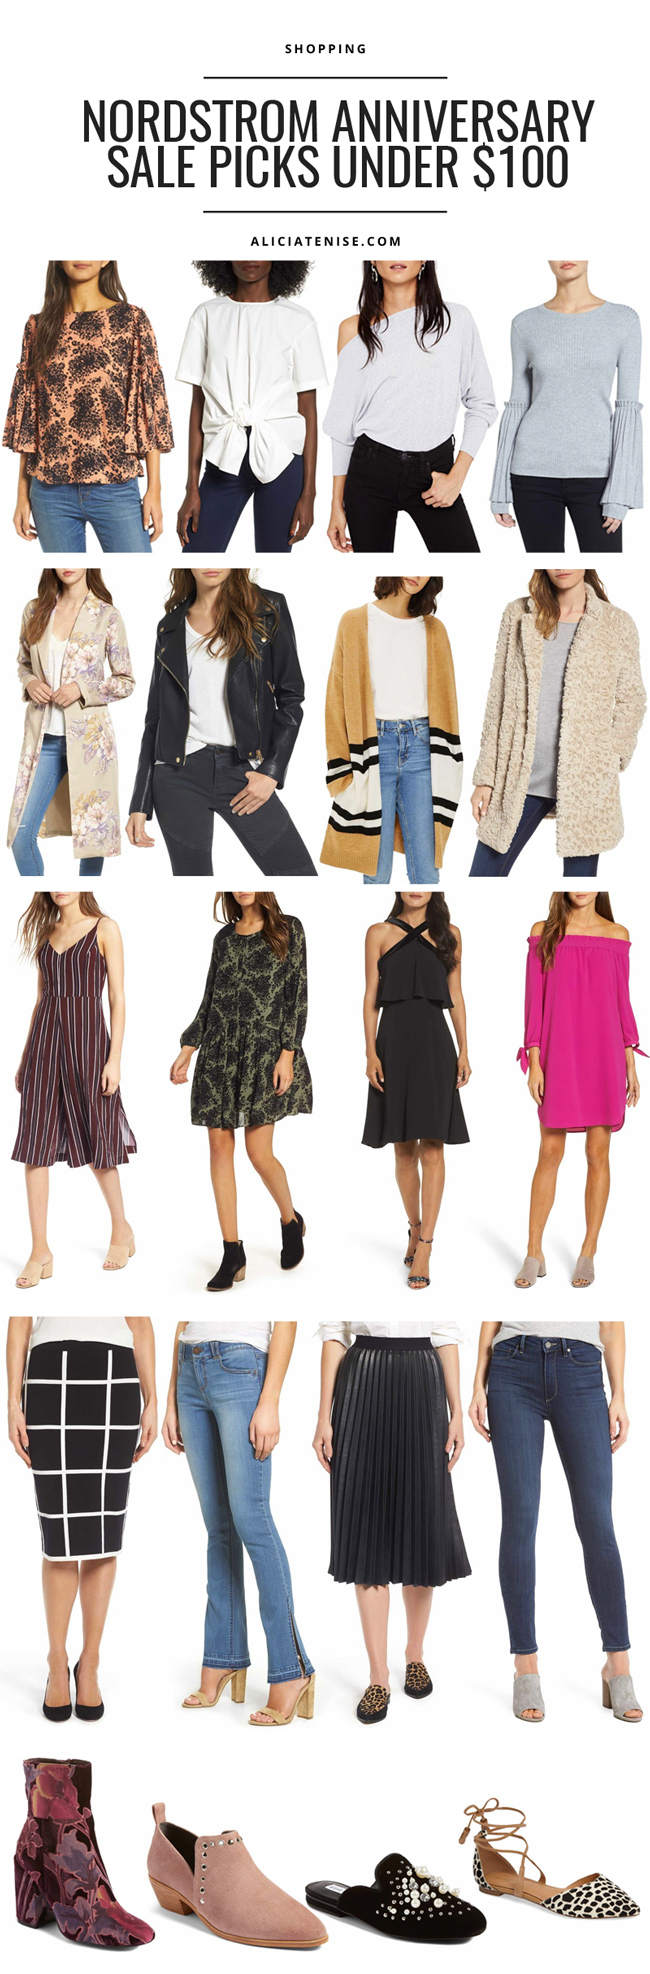 Blogger Alicia Tenise shares her top Nordstrom Anniversary Sale 2017 Picks under $100 - 2017 Nordstrom Anniversary Sale Picks Under $100 by DC fashion blogger Alicia Tenise